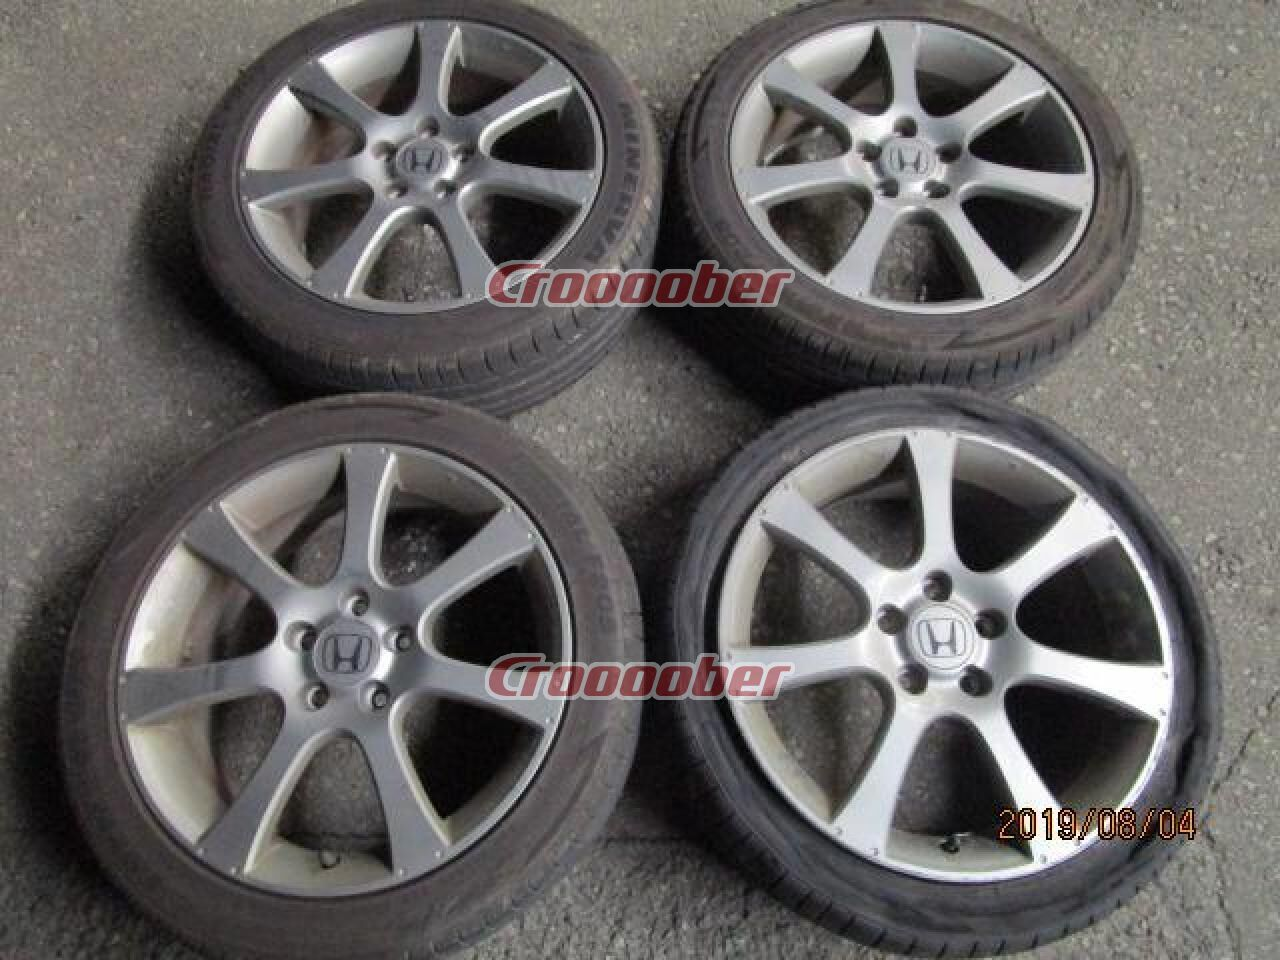 Honda Odyssey Tires >> Only 4 Genuine Honda Odyssey Rb1 Absolute Late Original Wheel Image Tires Are Not Included 7 0jx18 55114 3 5h For Sale Croooober